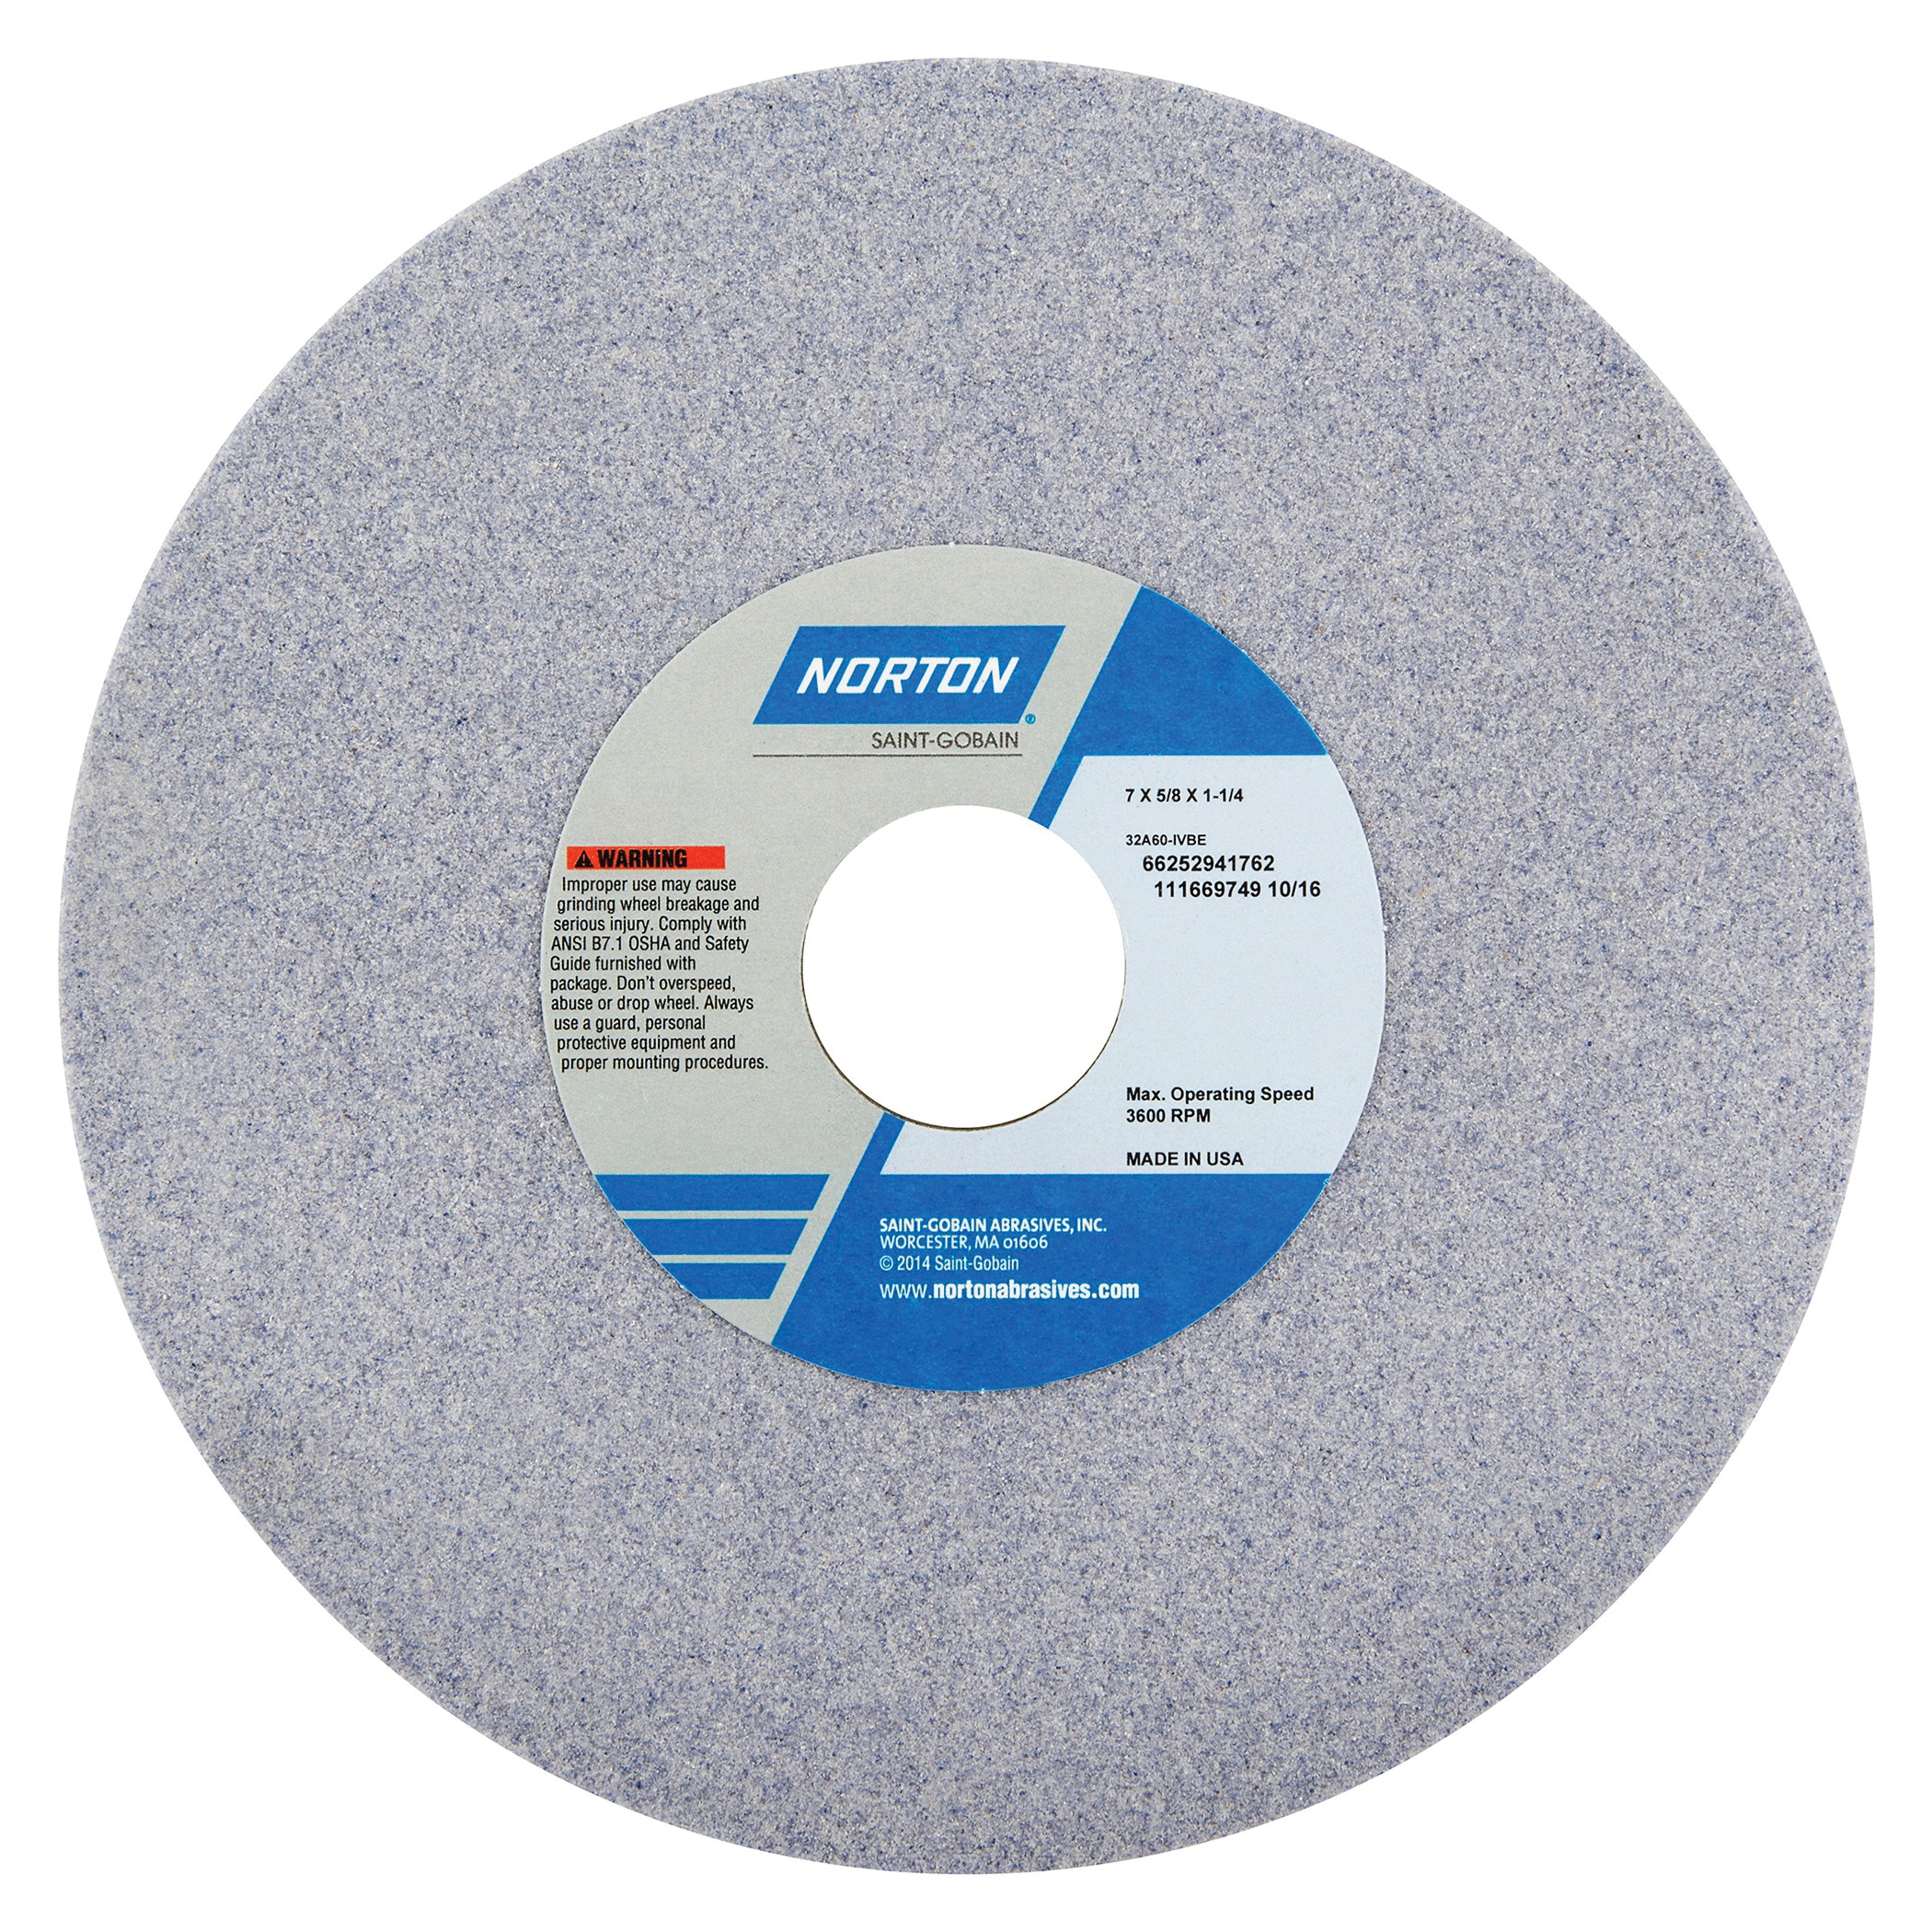 Norton® 66252941762 32A Straight Toolroom Wheel, 7 in Dia x 5/8 in THK, 1-1/4 in Center Hole, 60 Grit, Aluminum Oxide Abrasive